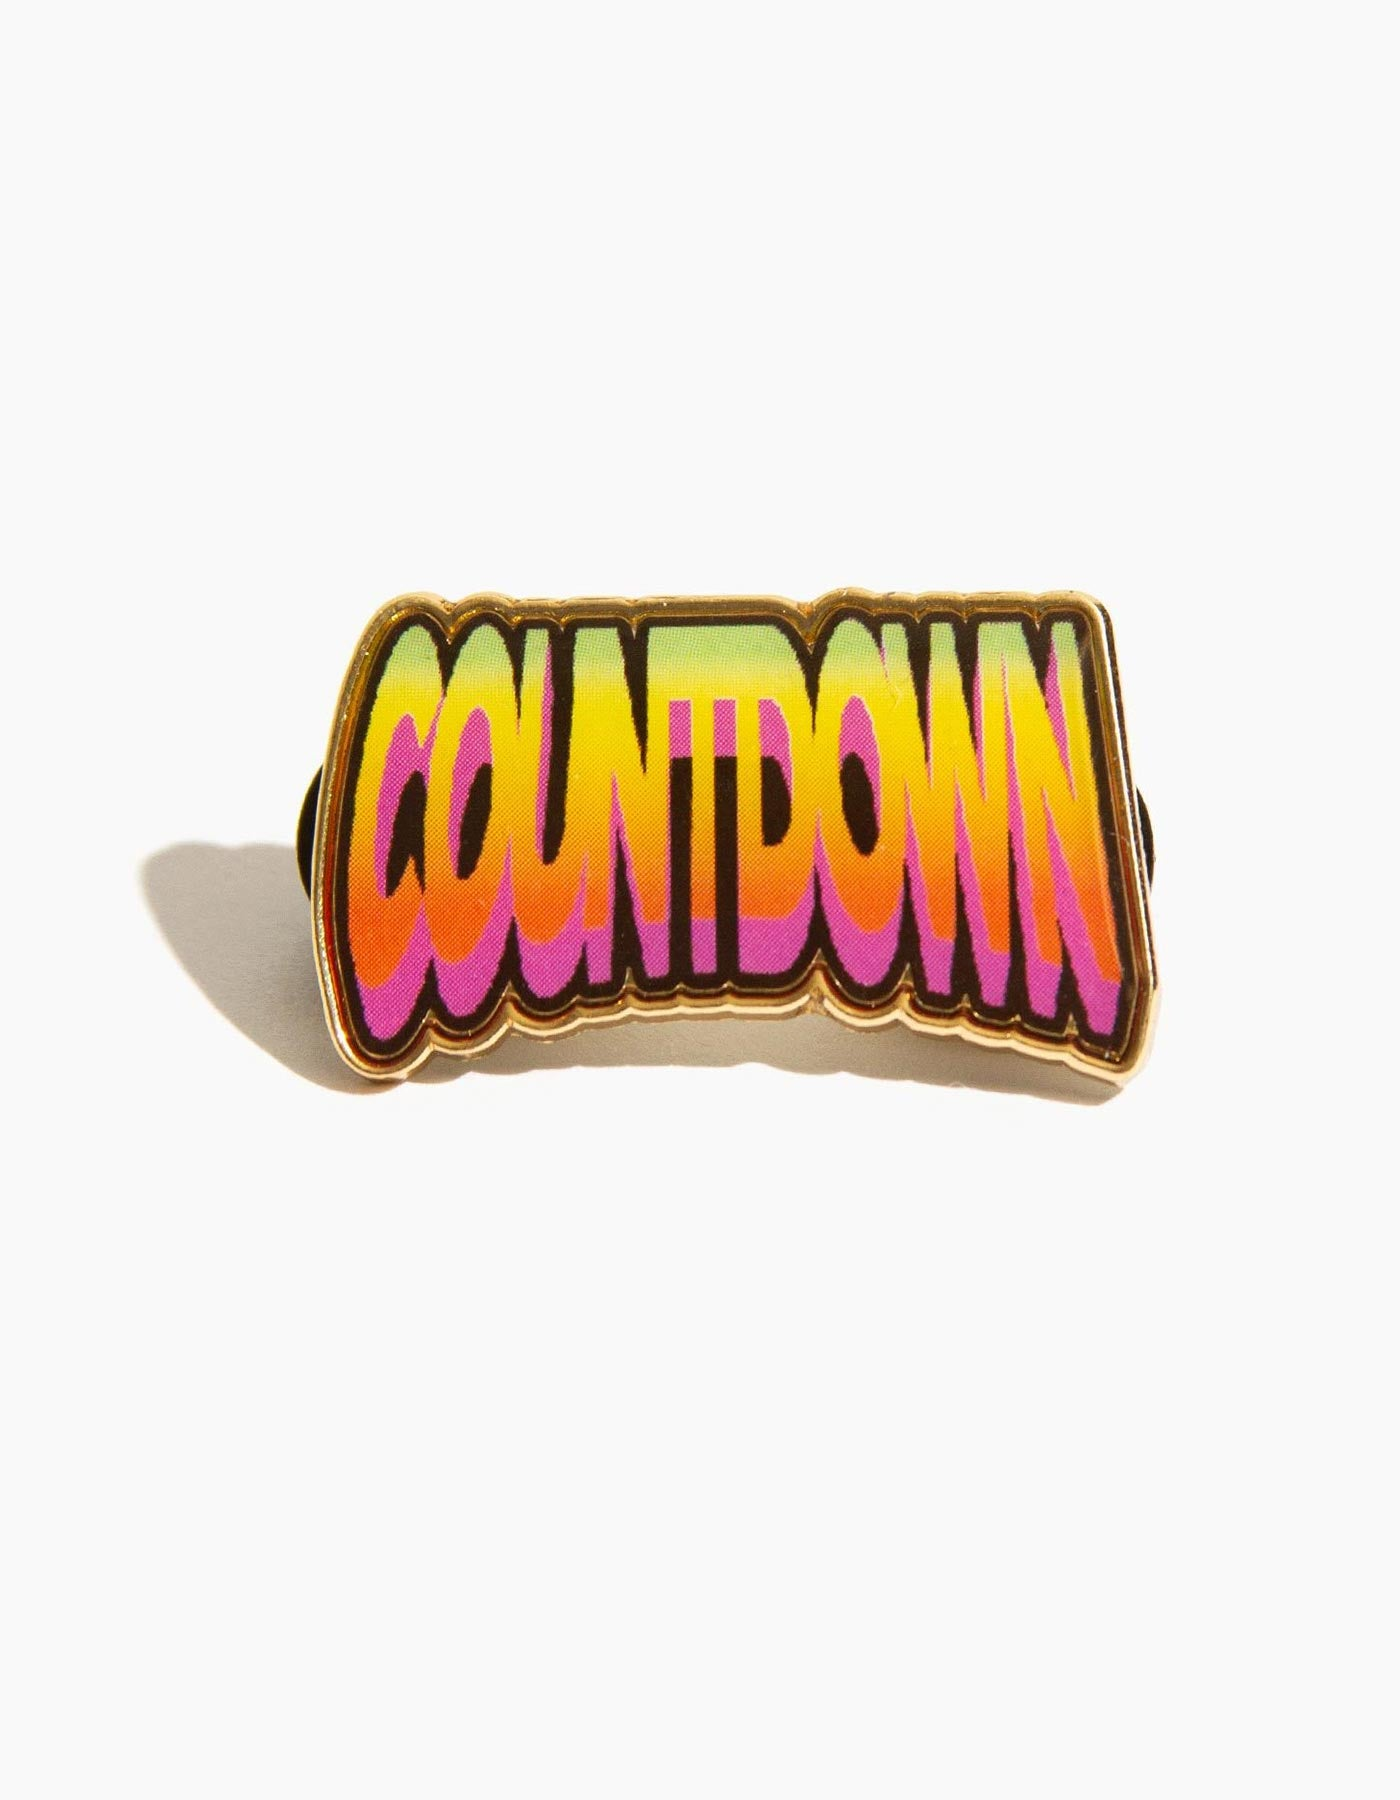 Countdown 2019 Invasion Pin